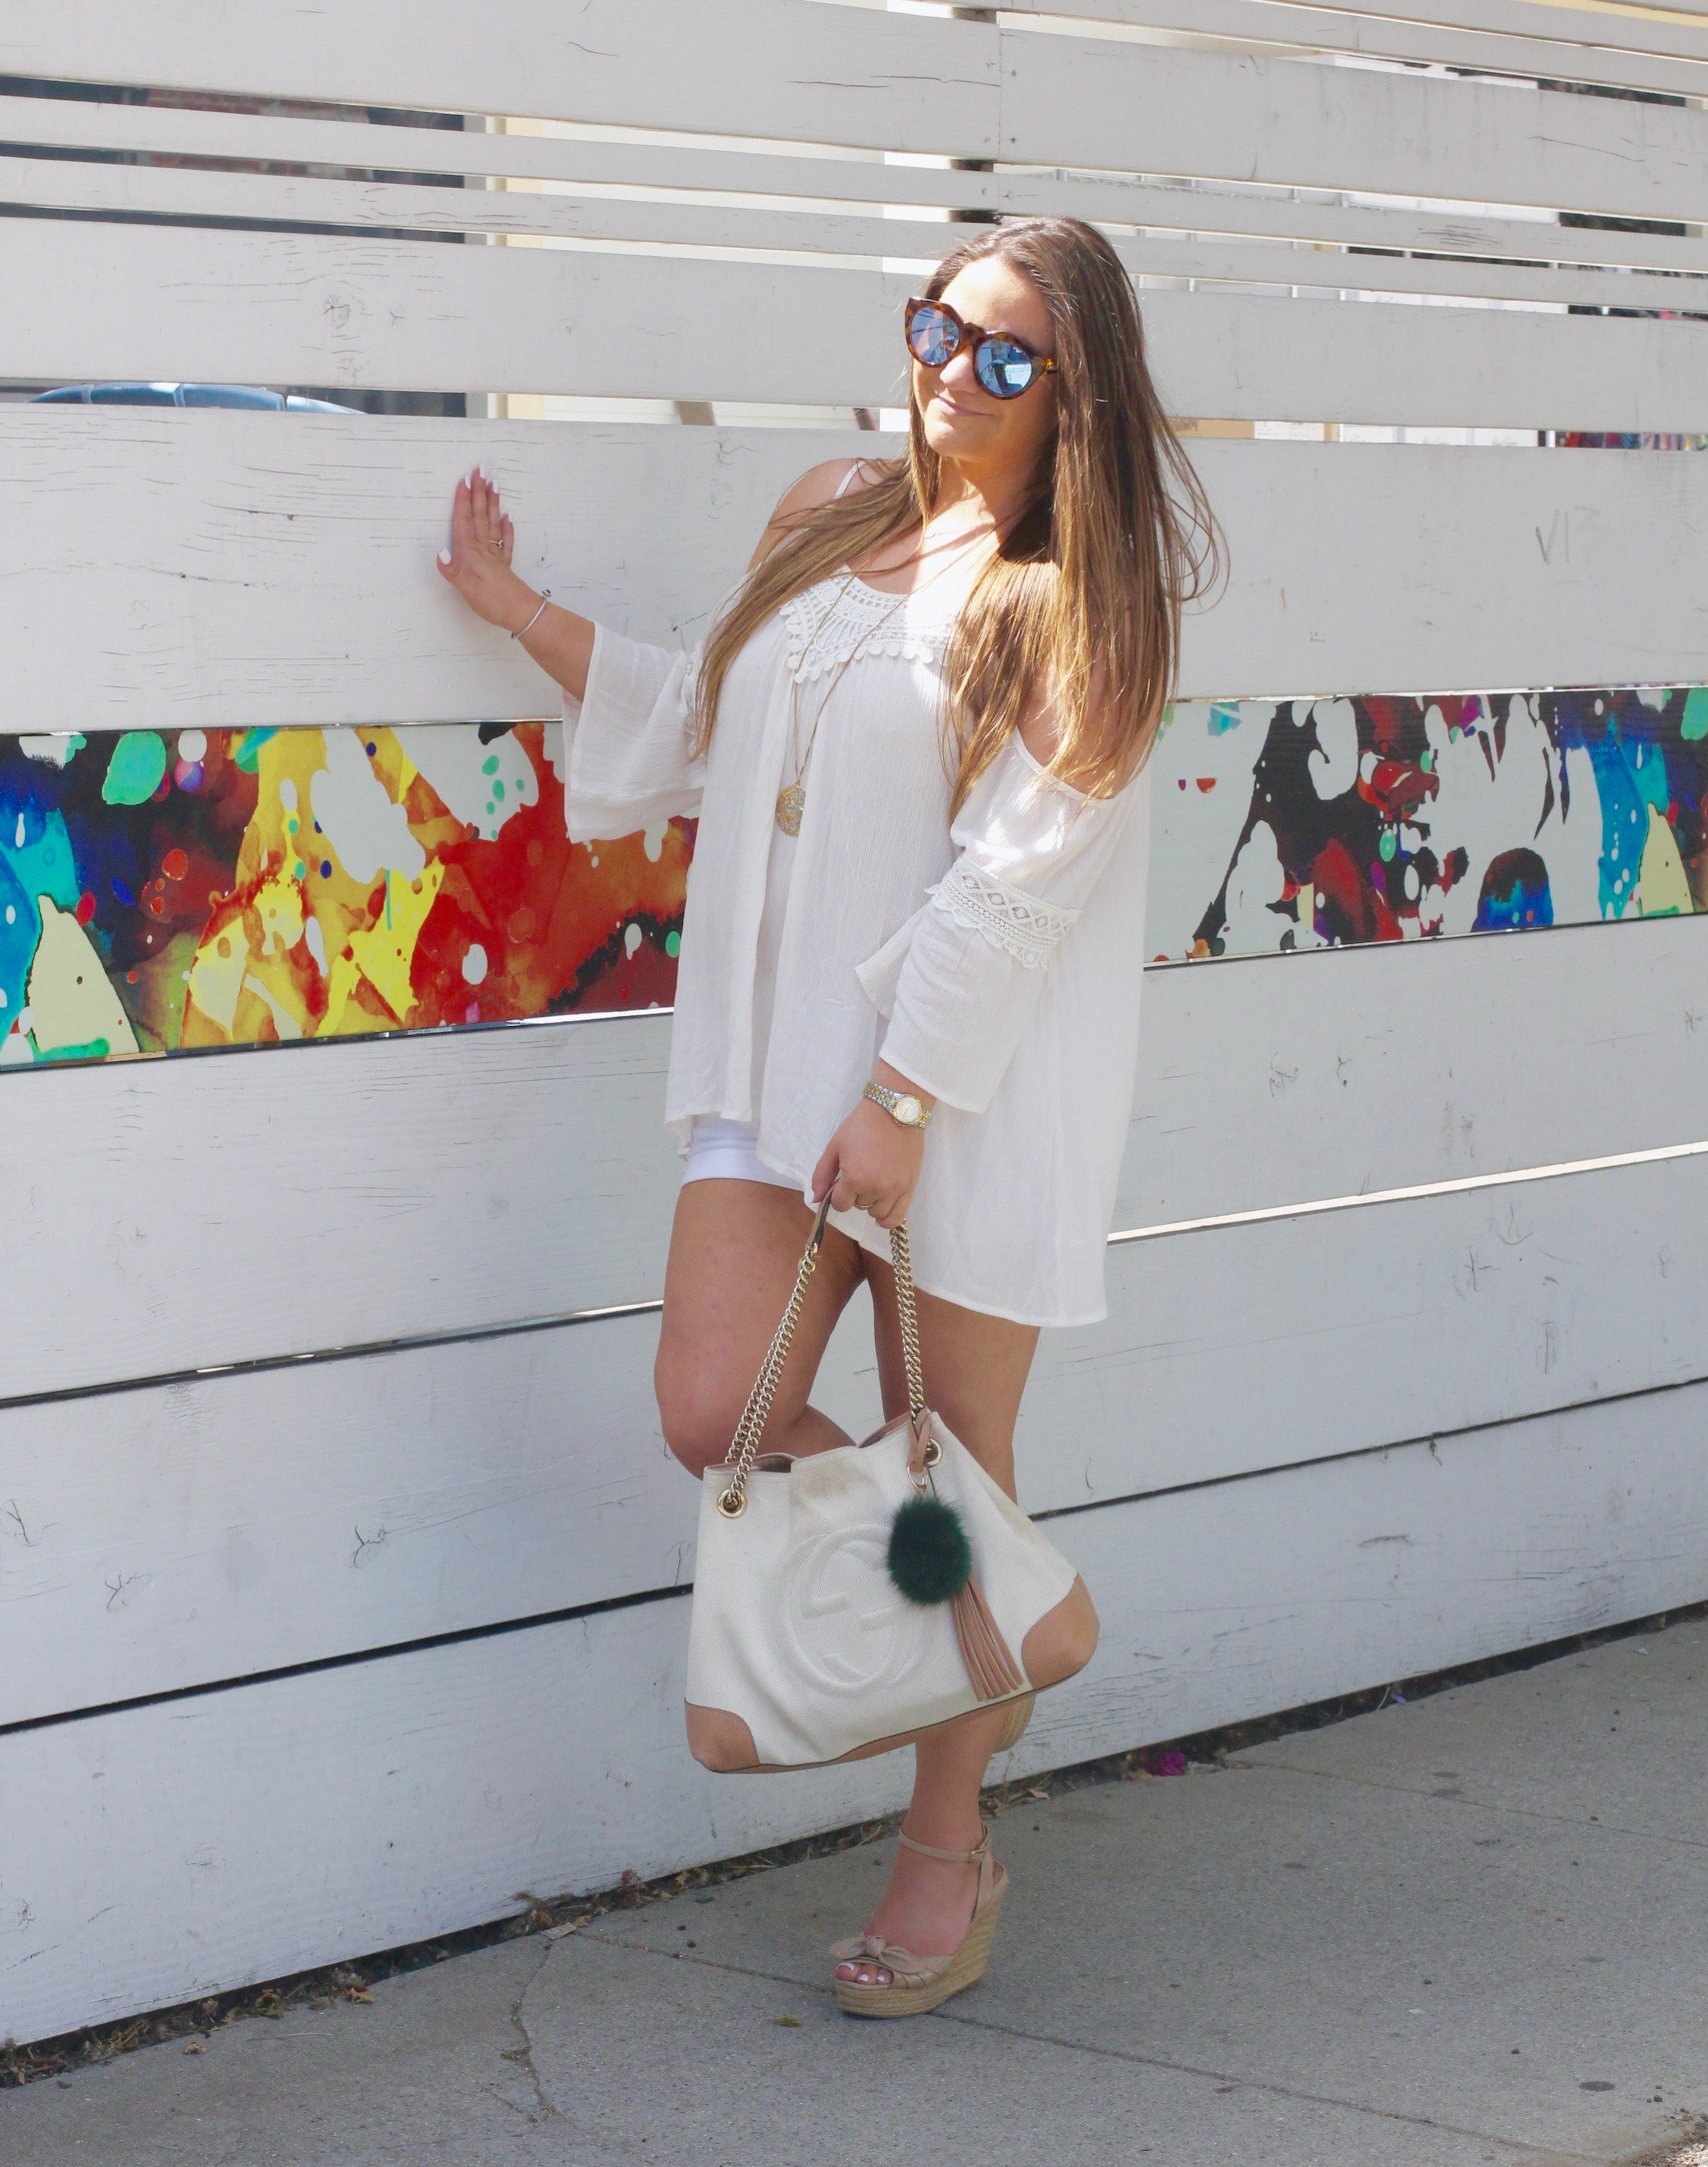 missyonmadison, melissa tierney, fashion blogger, fashion blog, style blog, style blogger, la blogger, cold shoulder top, off the shoulder top, target, target style, summer style, summer 2015 trends, summer trends, summer 2016 style, espadrille wedges, nude espadrille wedges, gucci soho bag, green puff keychain, pom pom keychain, white gucci soho bag, le specs necklace, le specs sunglasses, white cotton shorts,